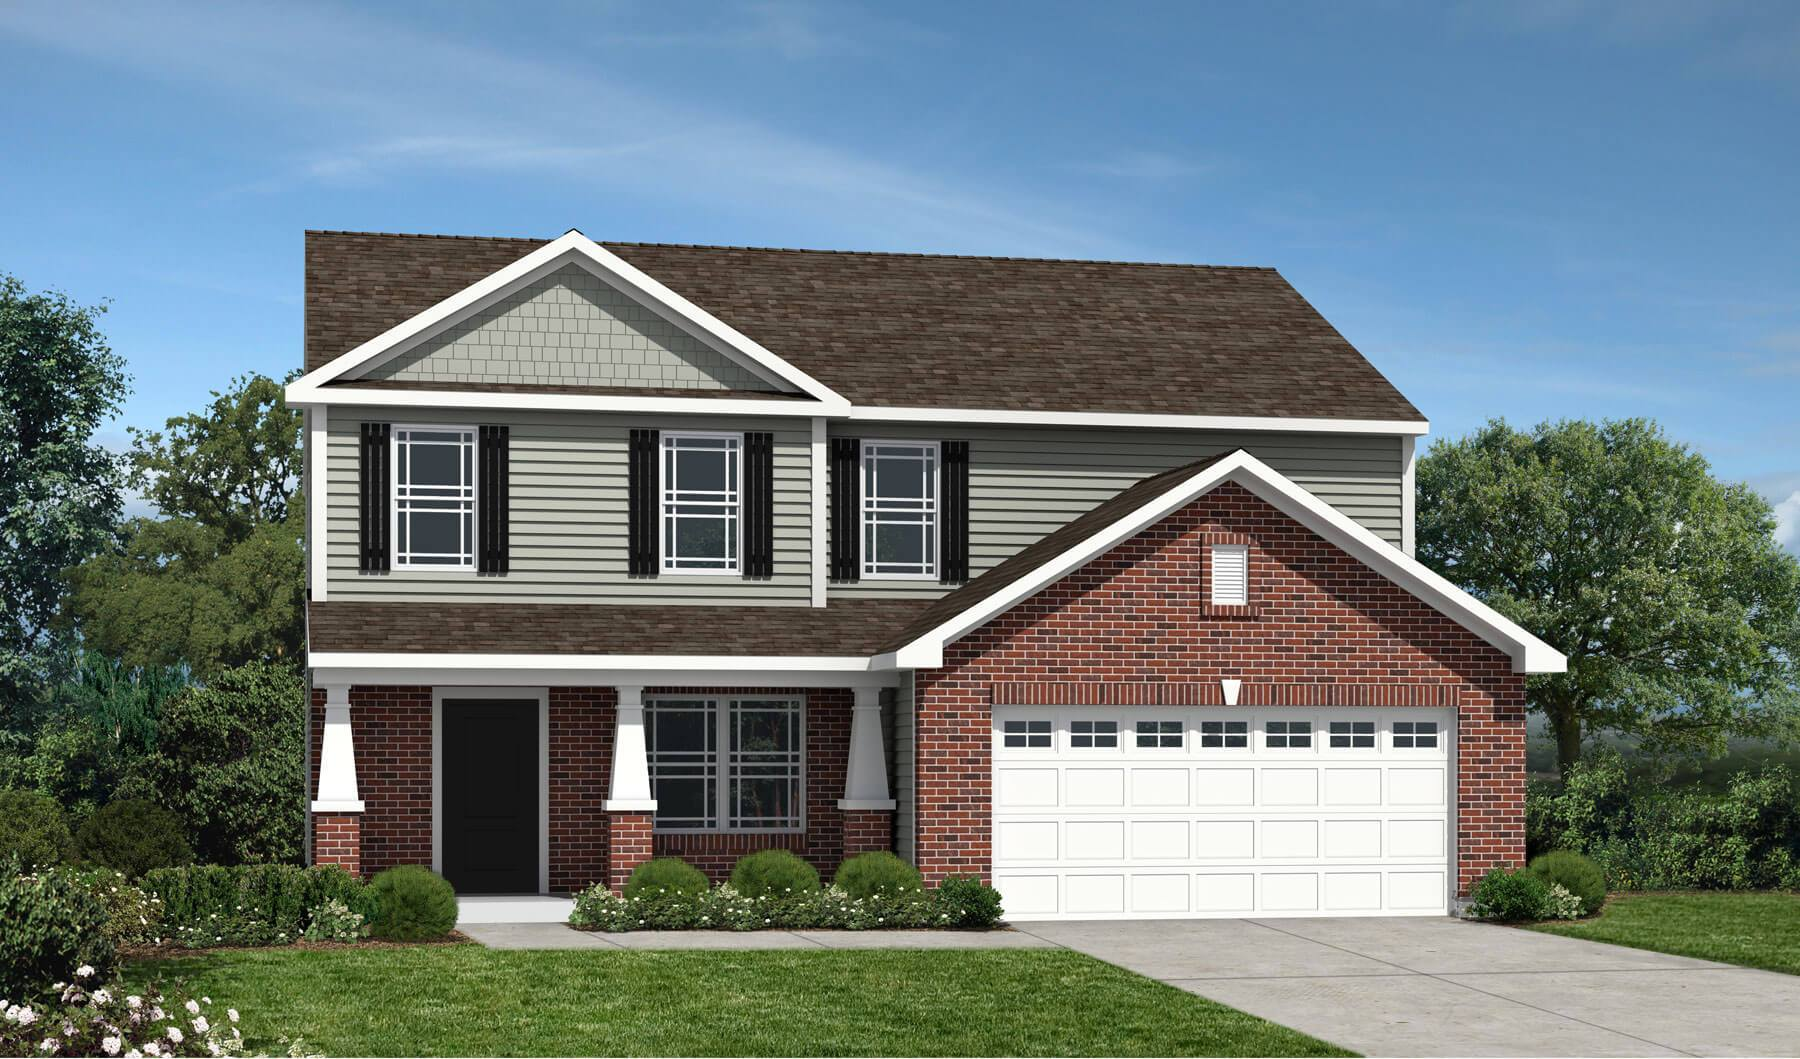 Westport homes of indianapolis sawmill monterey 1351496 for Houses for sale westport